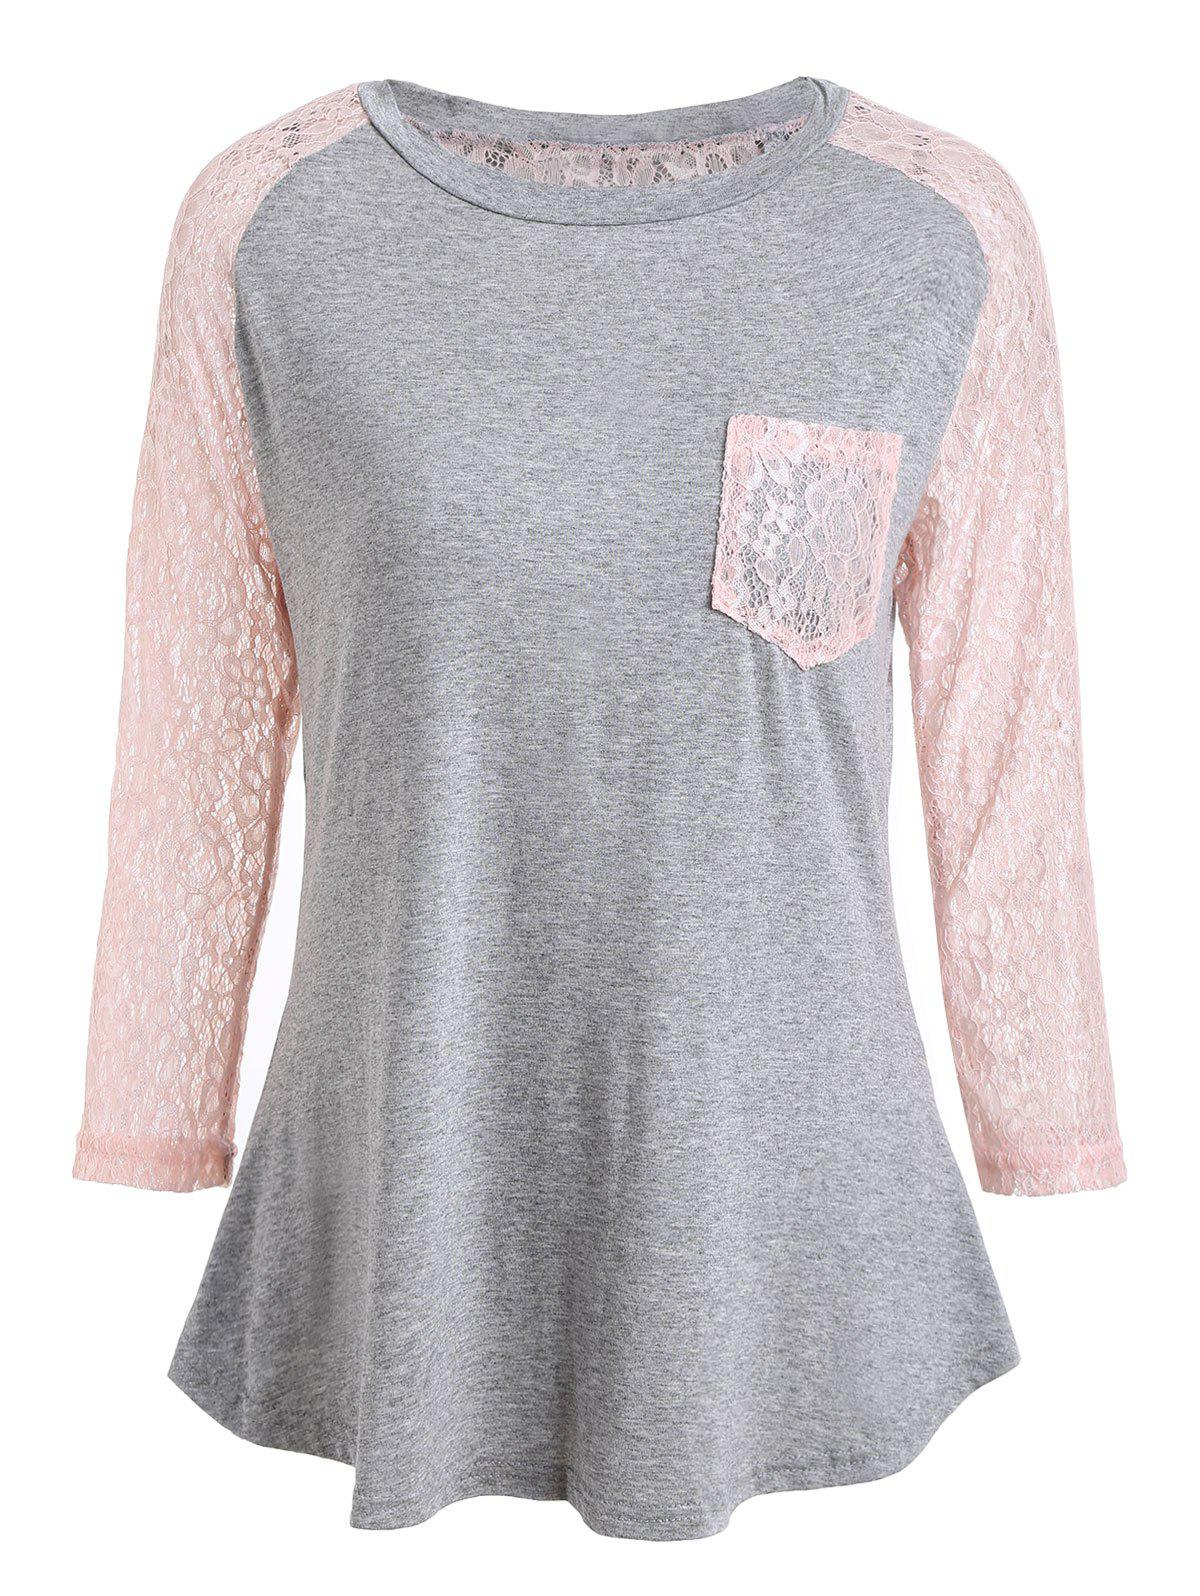 Sale Lace Panel Raglan Sleeve T-shirt with Pocket